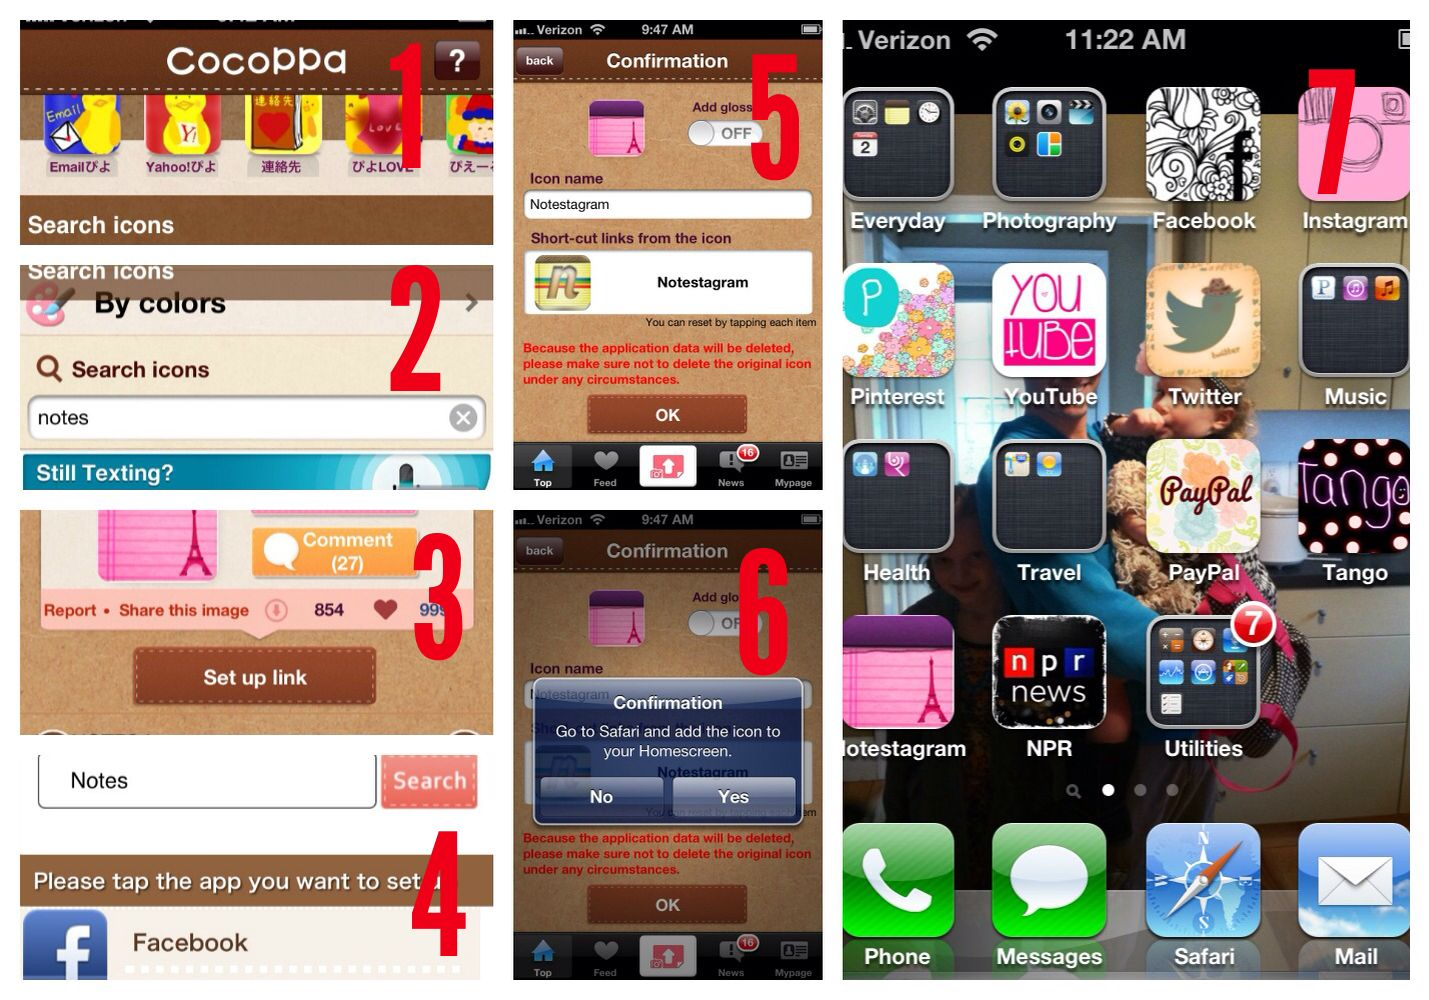 Makeover Your Icons! 1. Download the Cocoppa app. FREE! 2